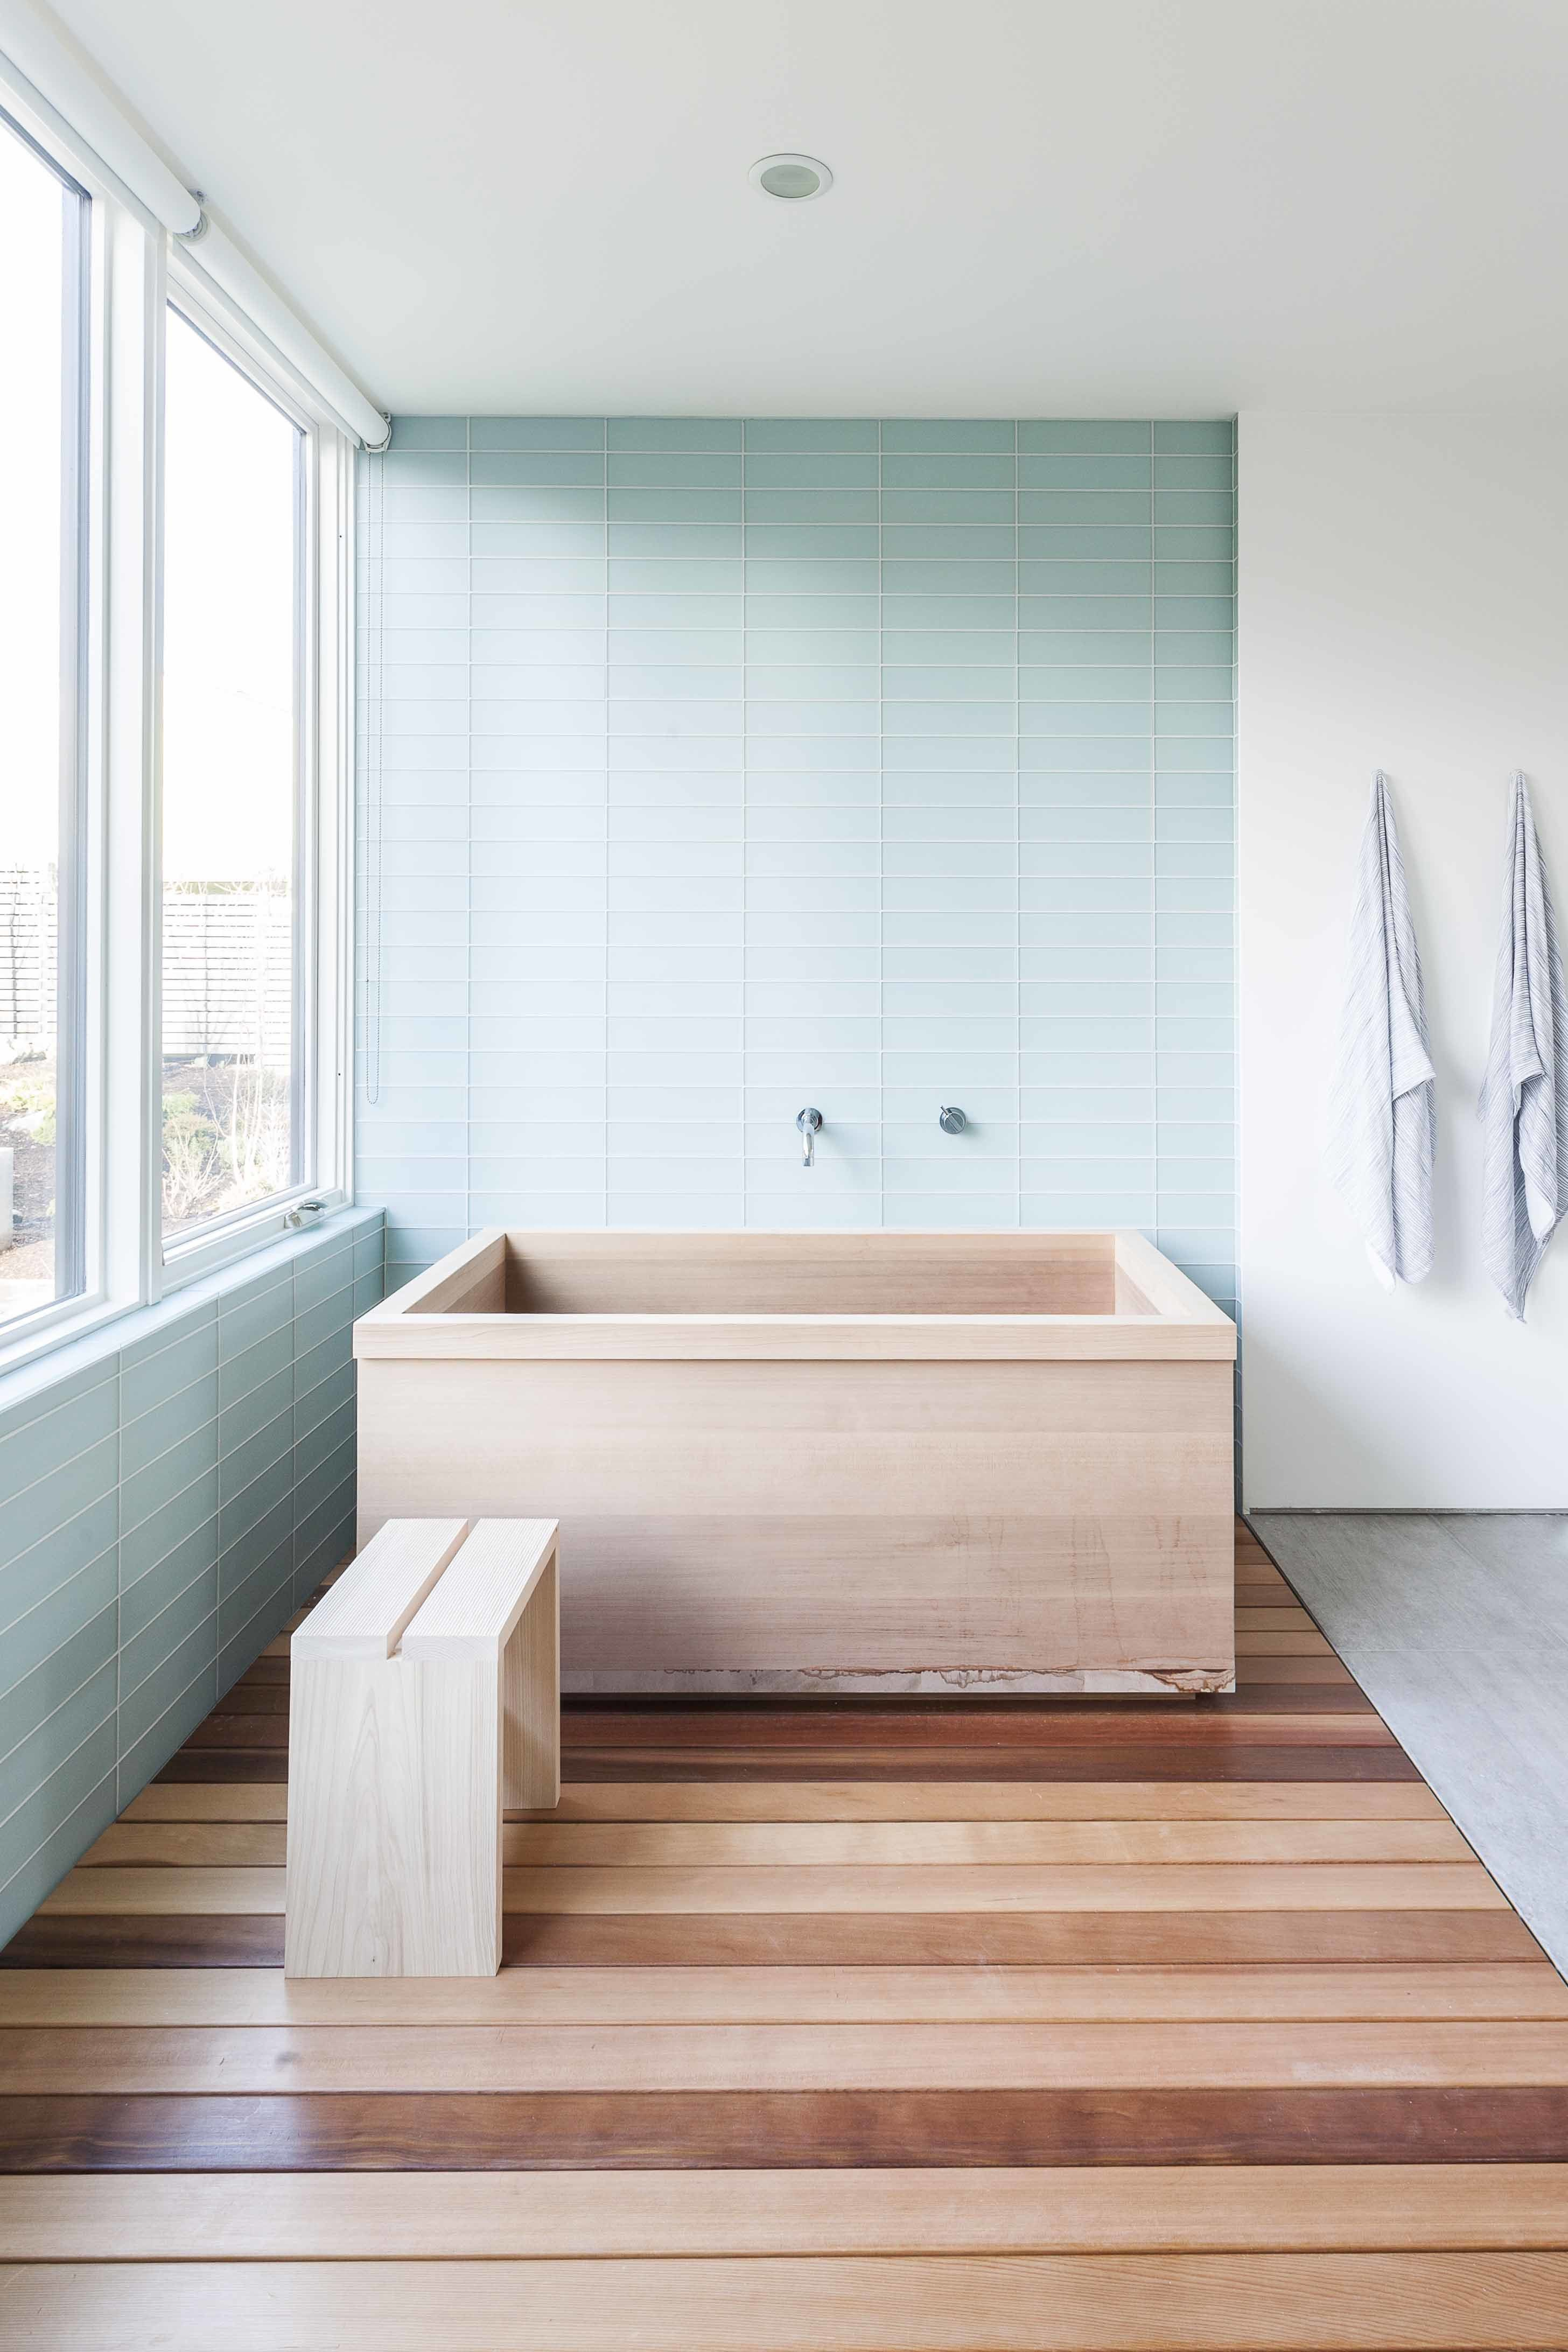 photo 3 of 10 in 10 ideas for the minimalist bathroom of your dreams rh pinterest com